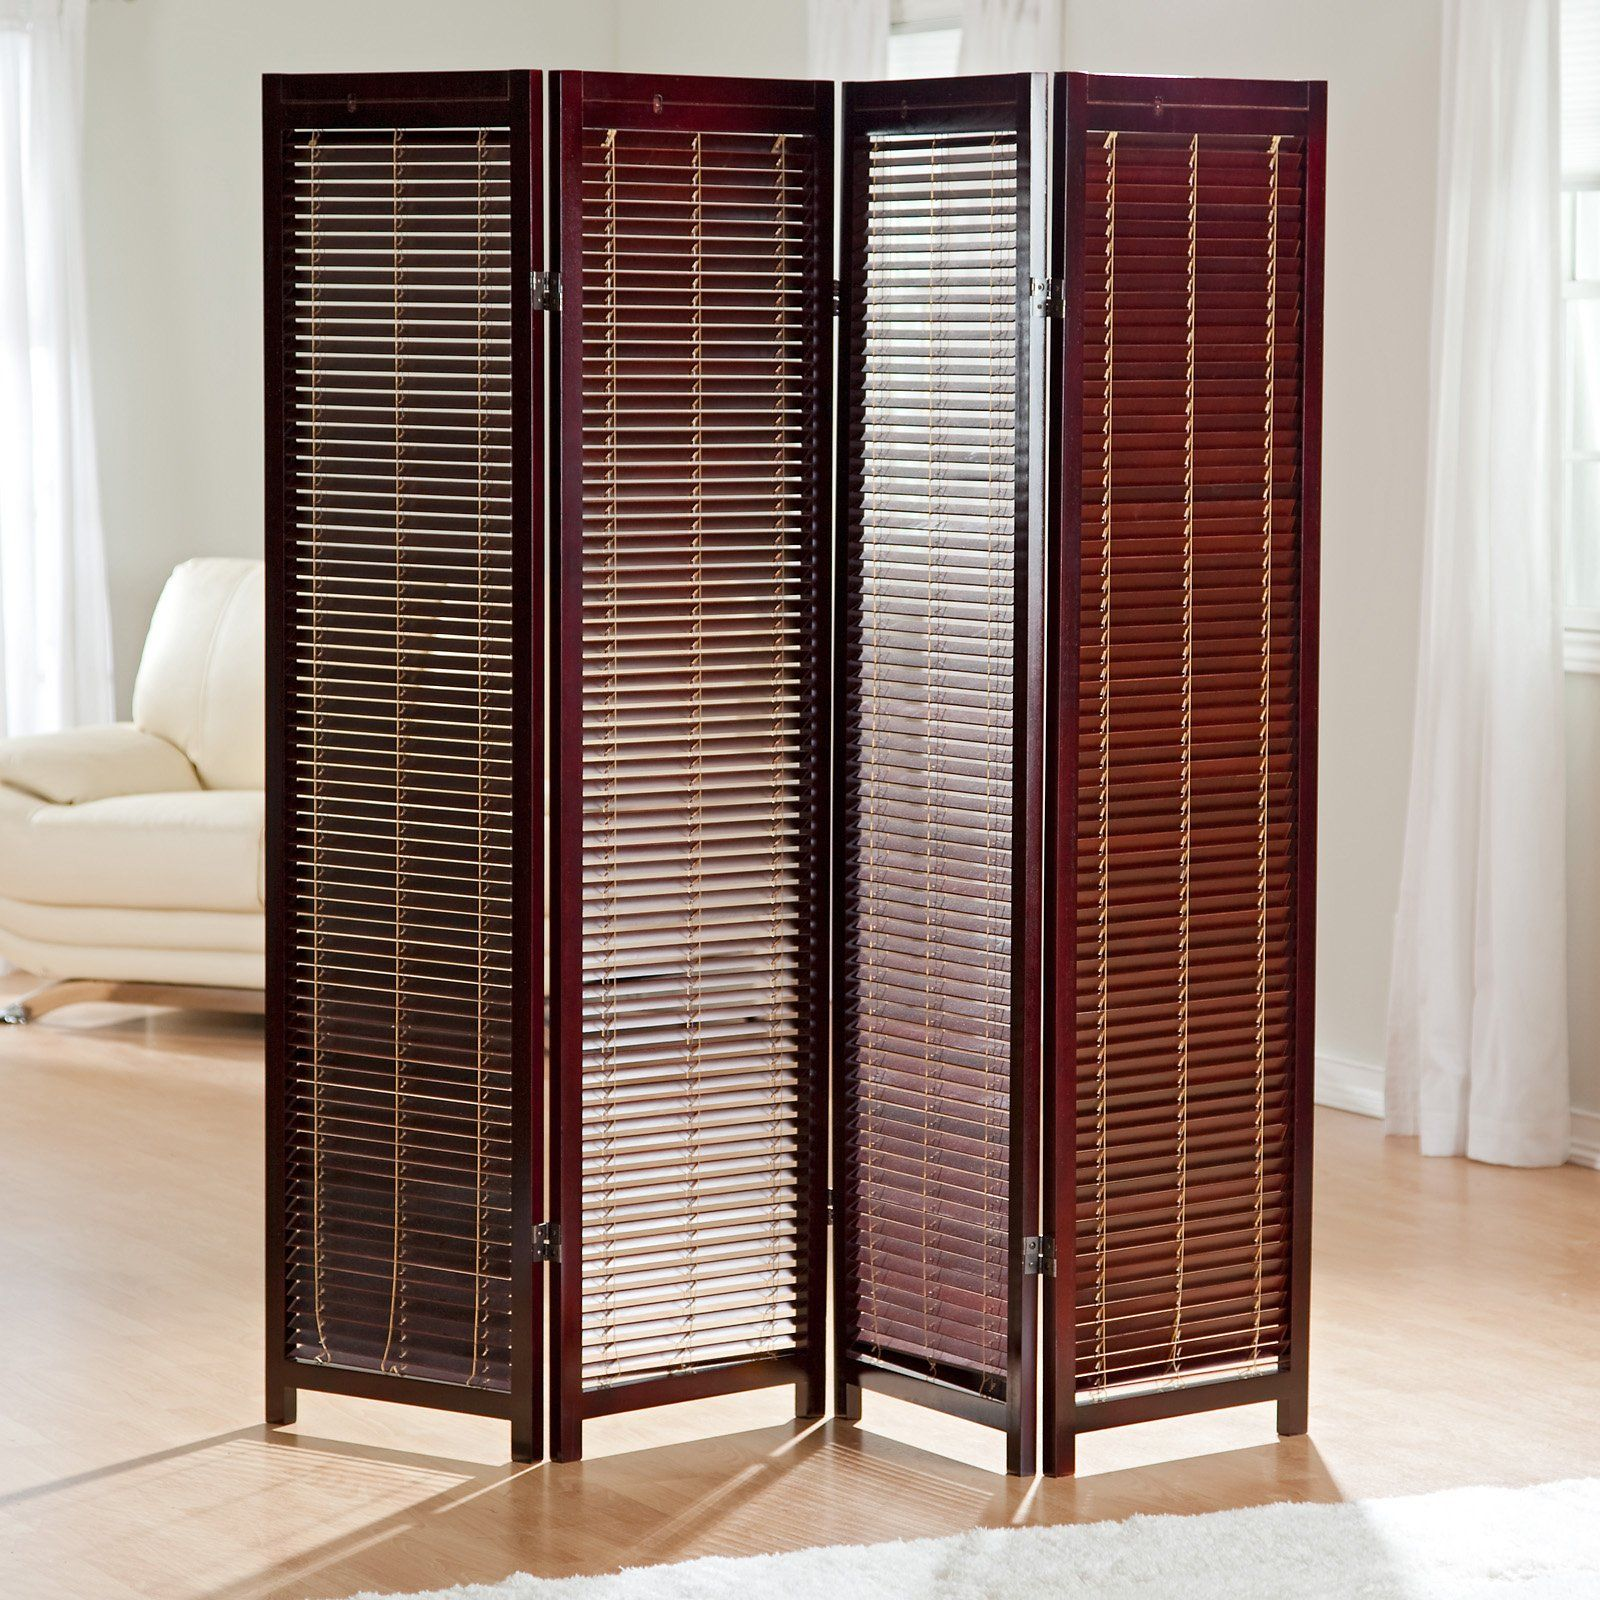 Tranquility Wooden Shutter Screen Room Divider In Rosewood   $139.98 @